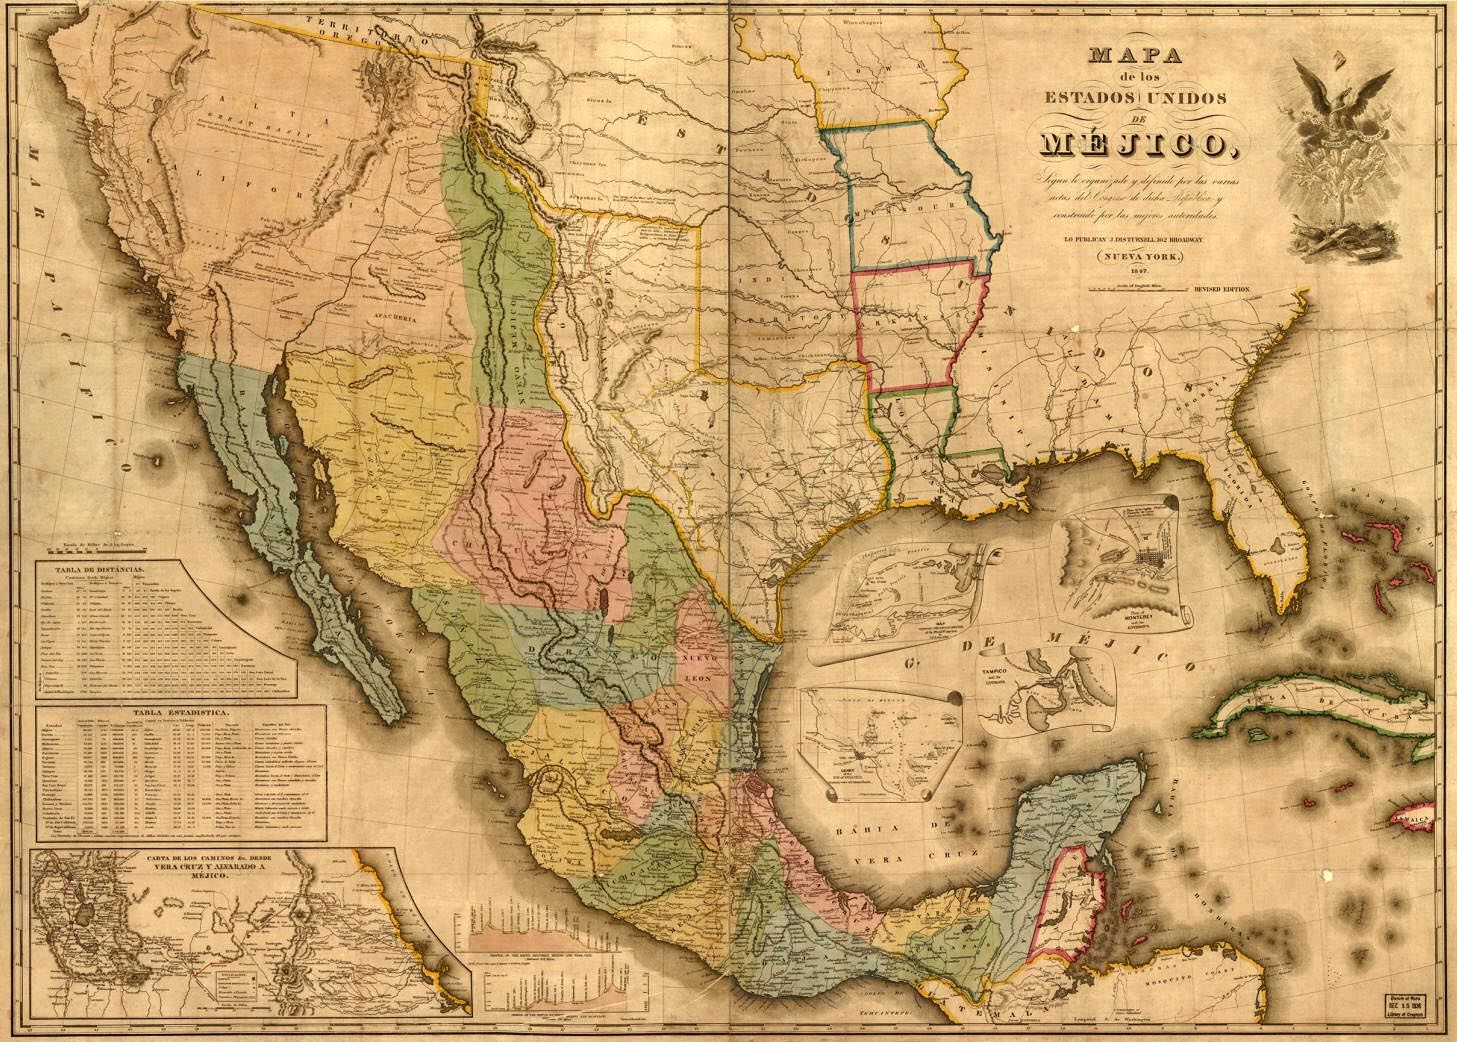 You Are Viewing An Original 1847 Map Of Mexico At The Time Of The Mexican War It Covers The United States Southwest Of Georgia And Iowa